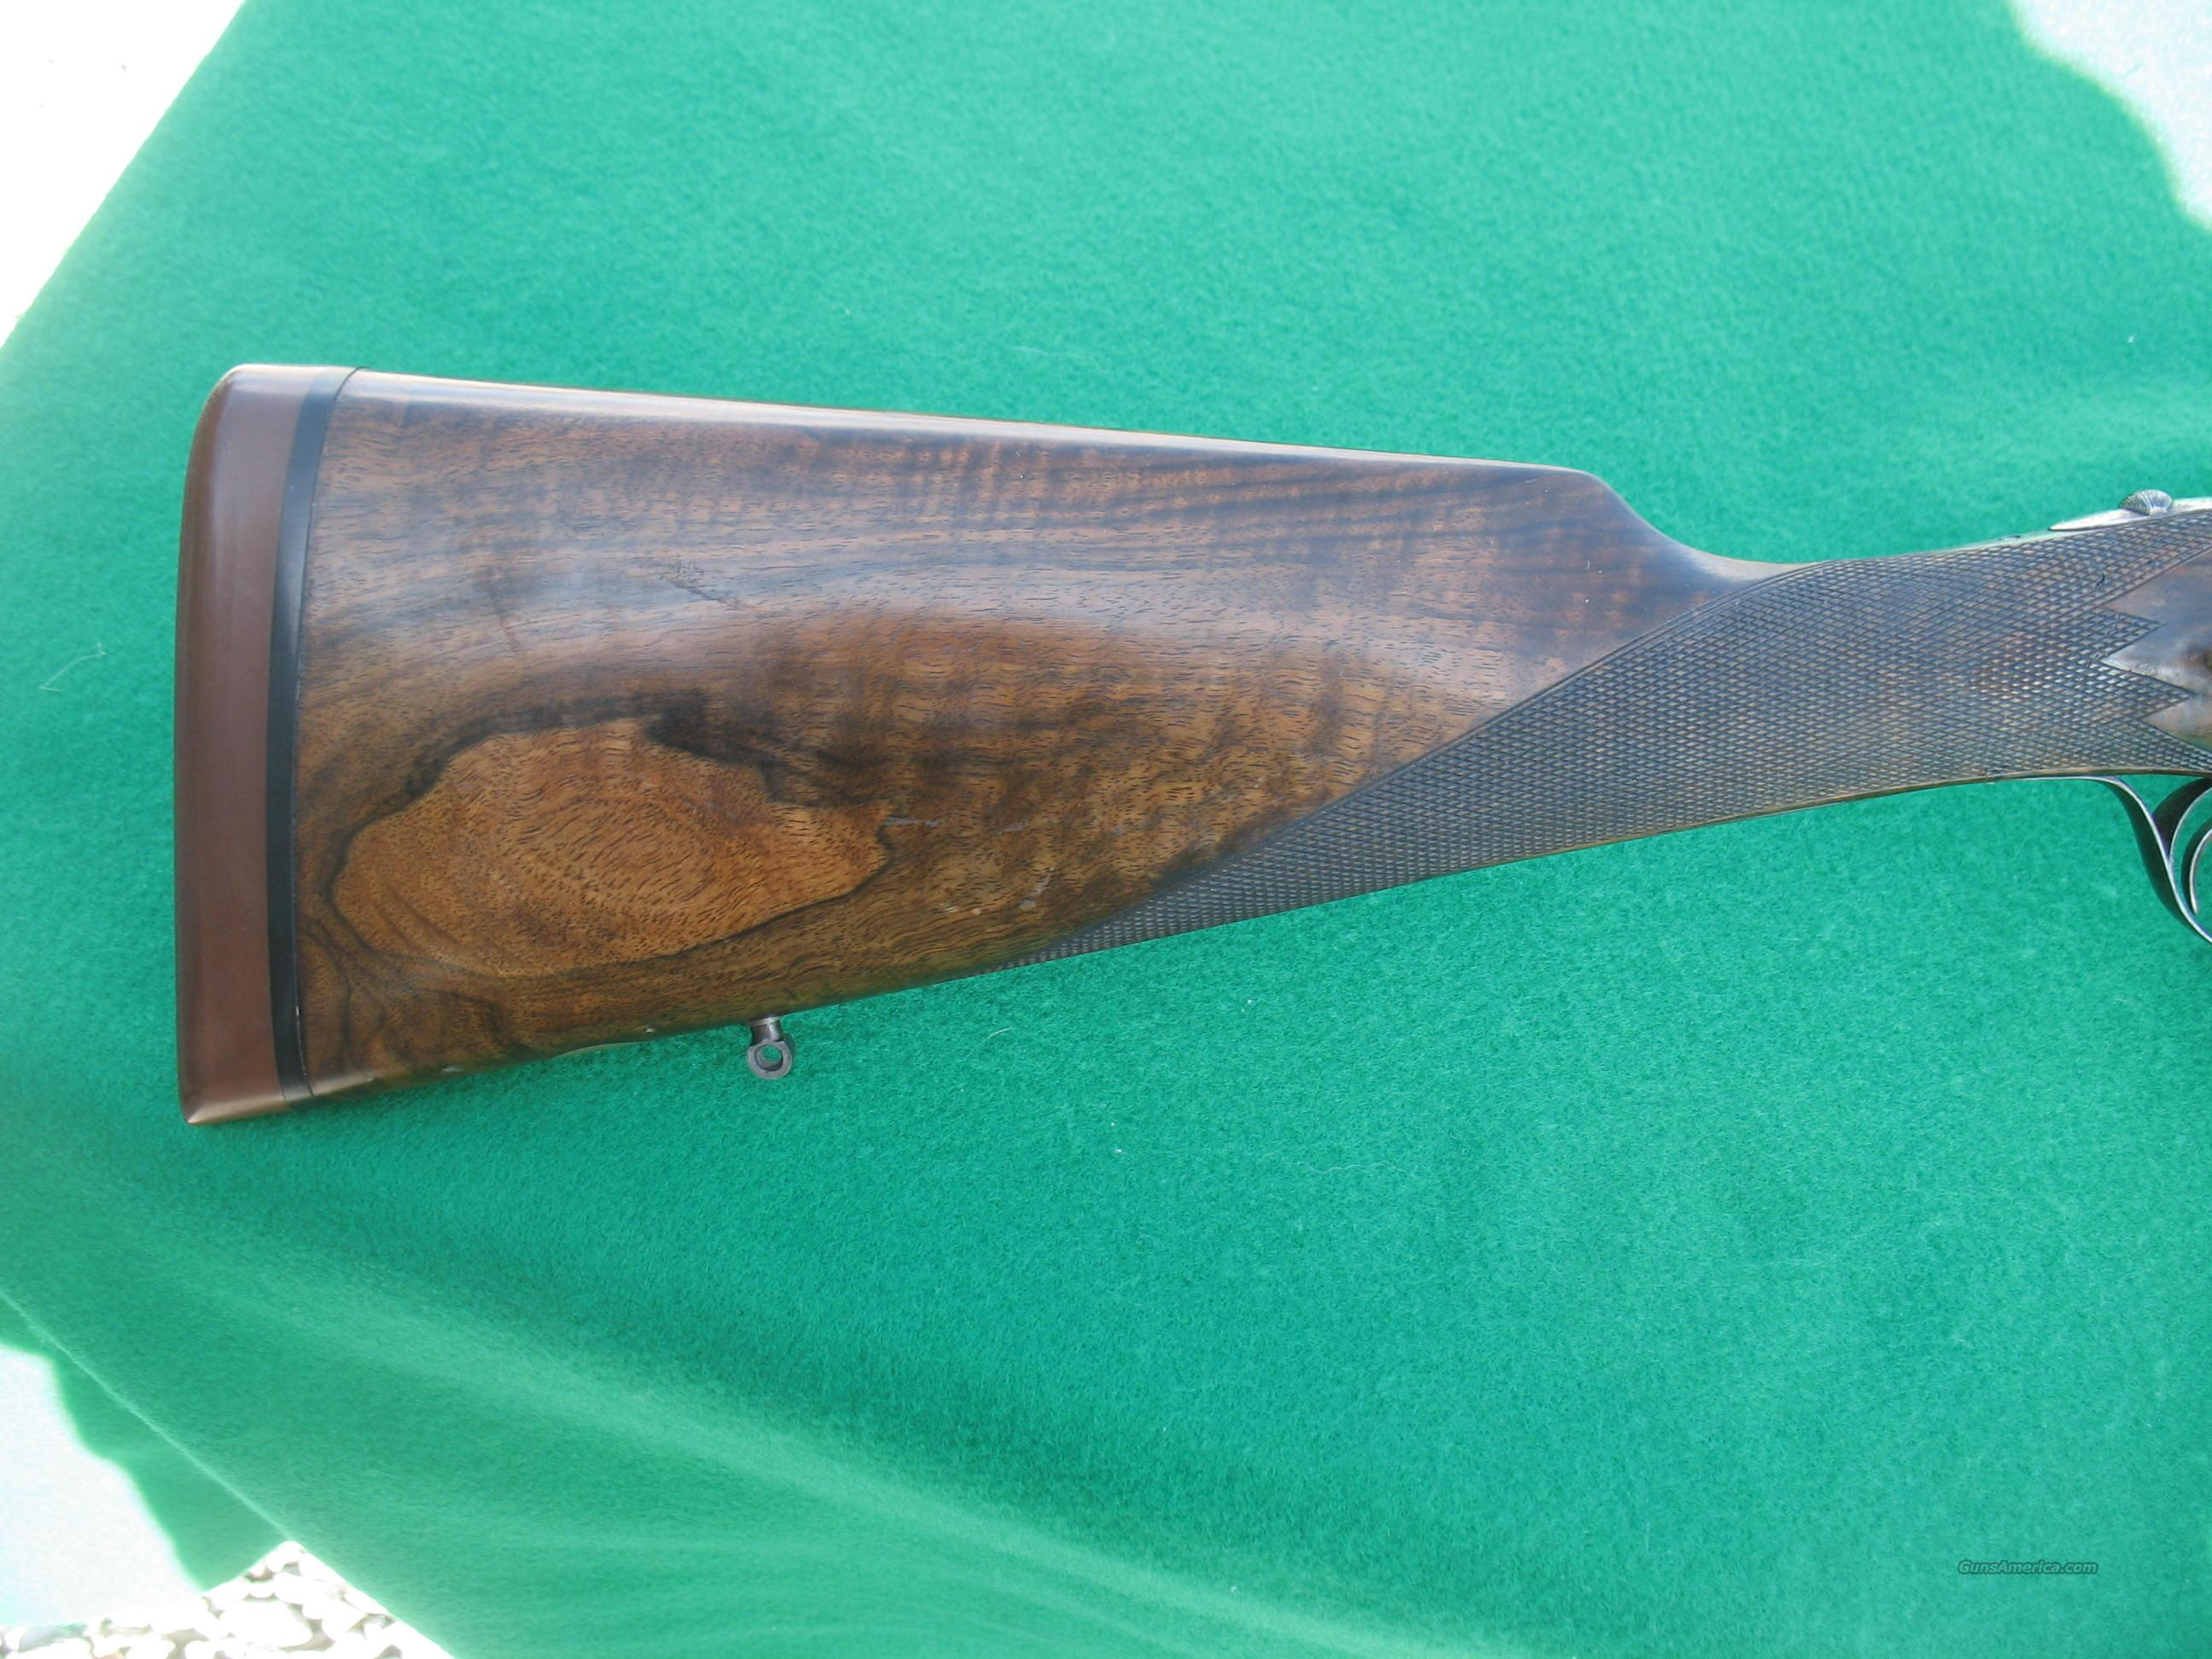 G. DEFOURNEY DOUBLE RIFLE/DRILLING 8X60R / 20GA.A BEAUTY!!!  Guns > Rifles > Double Rifles (Misc.)